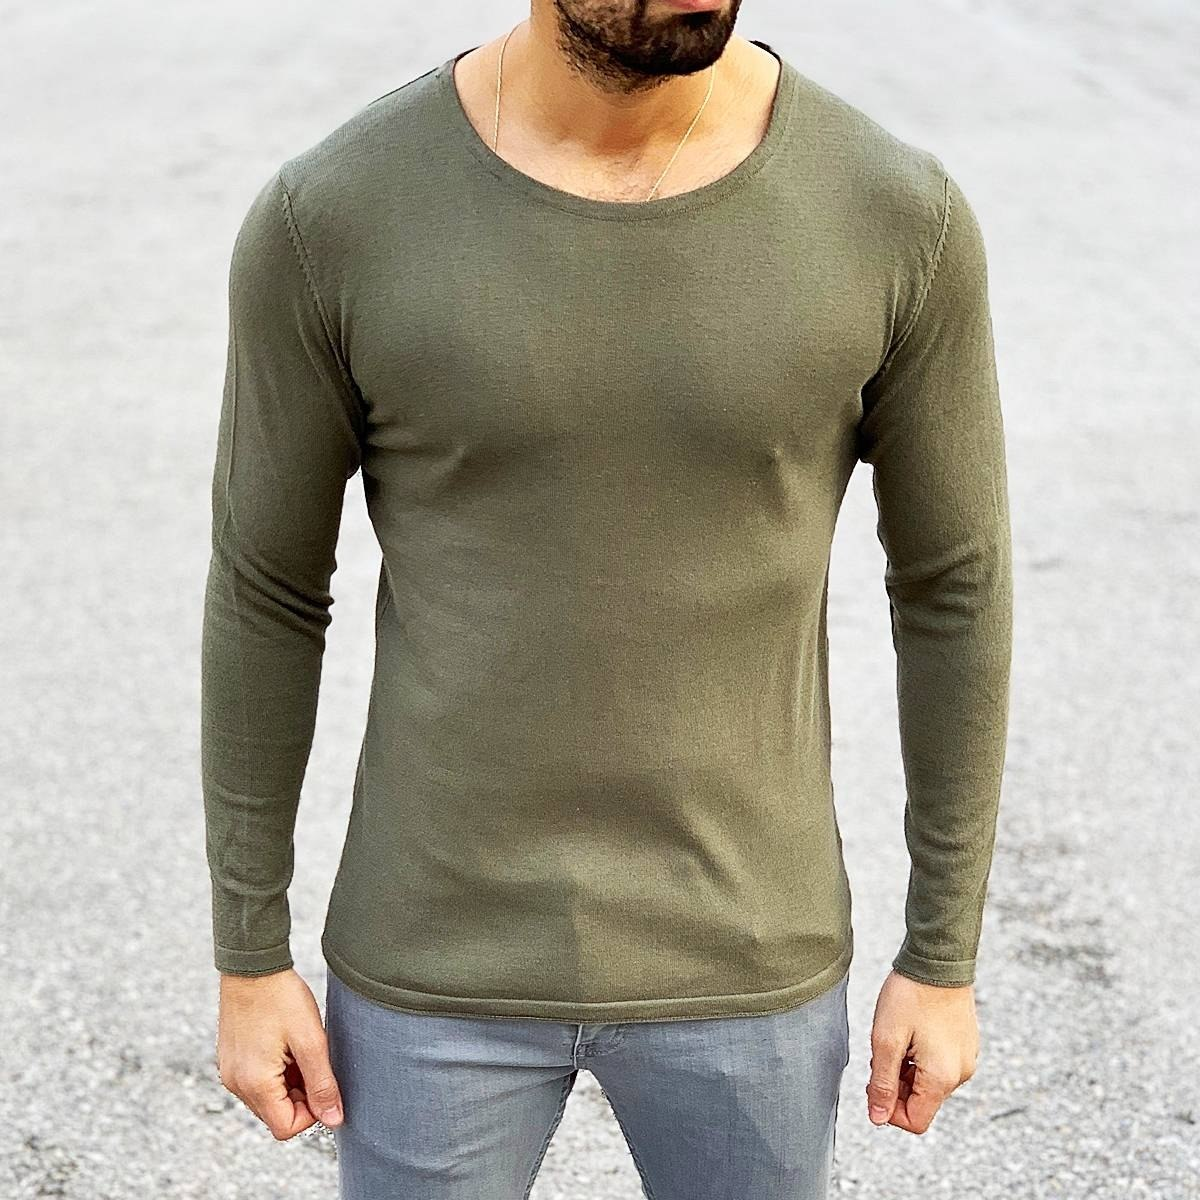 Men's Basic Spring Sweatshirt In Khaki